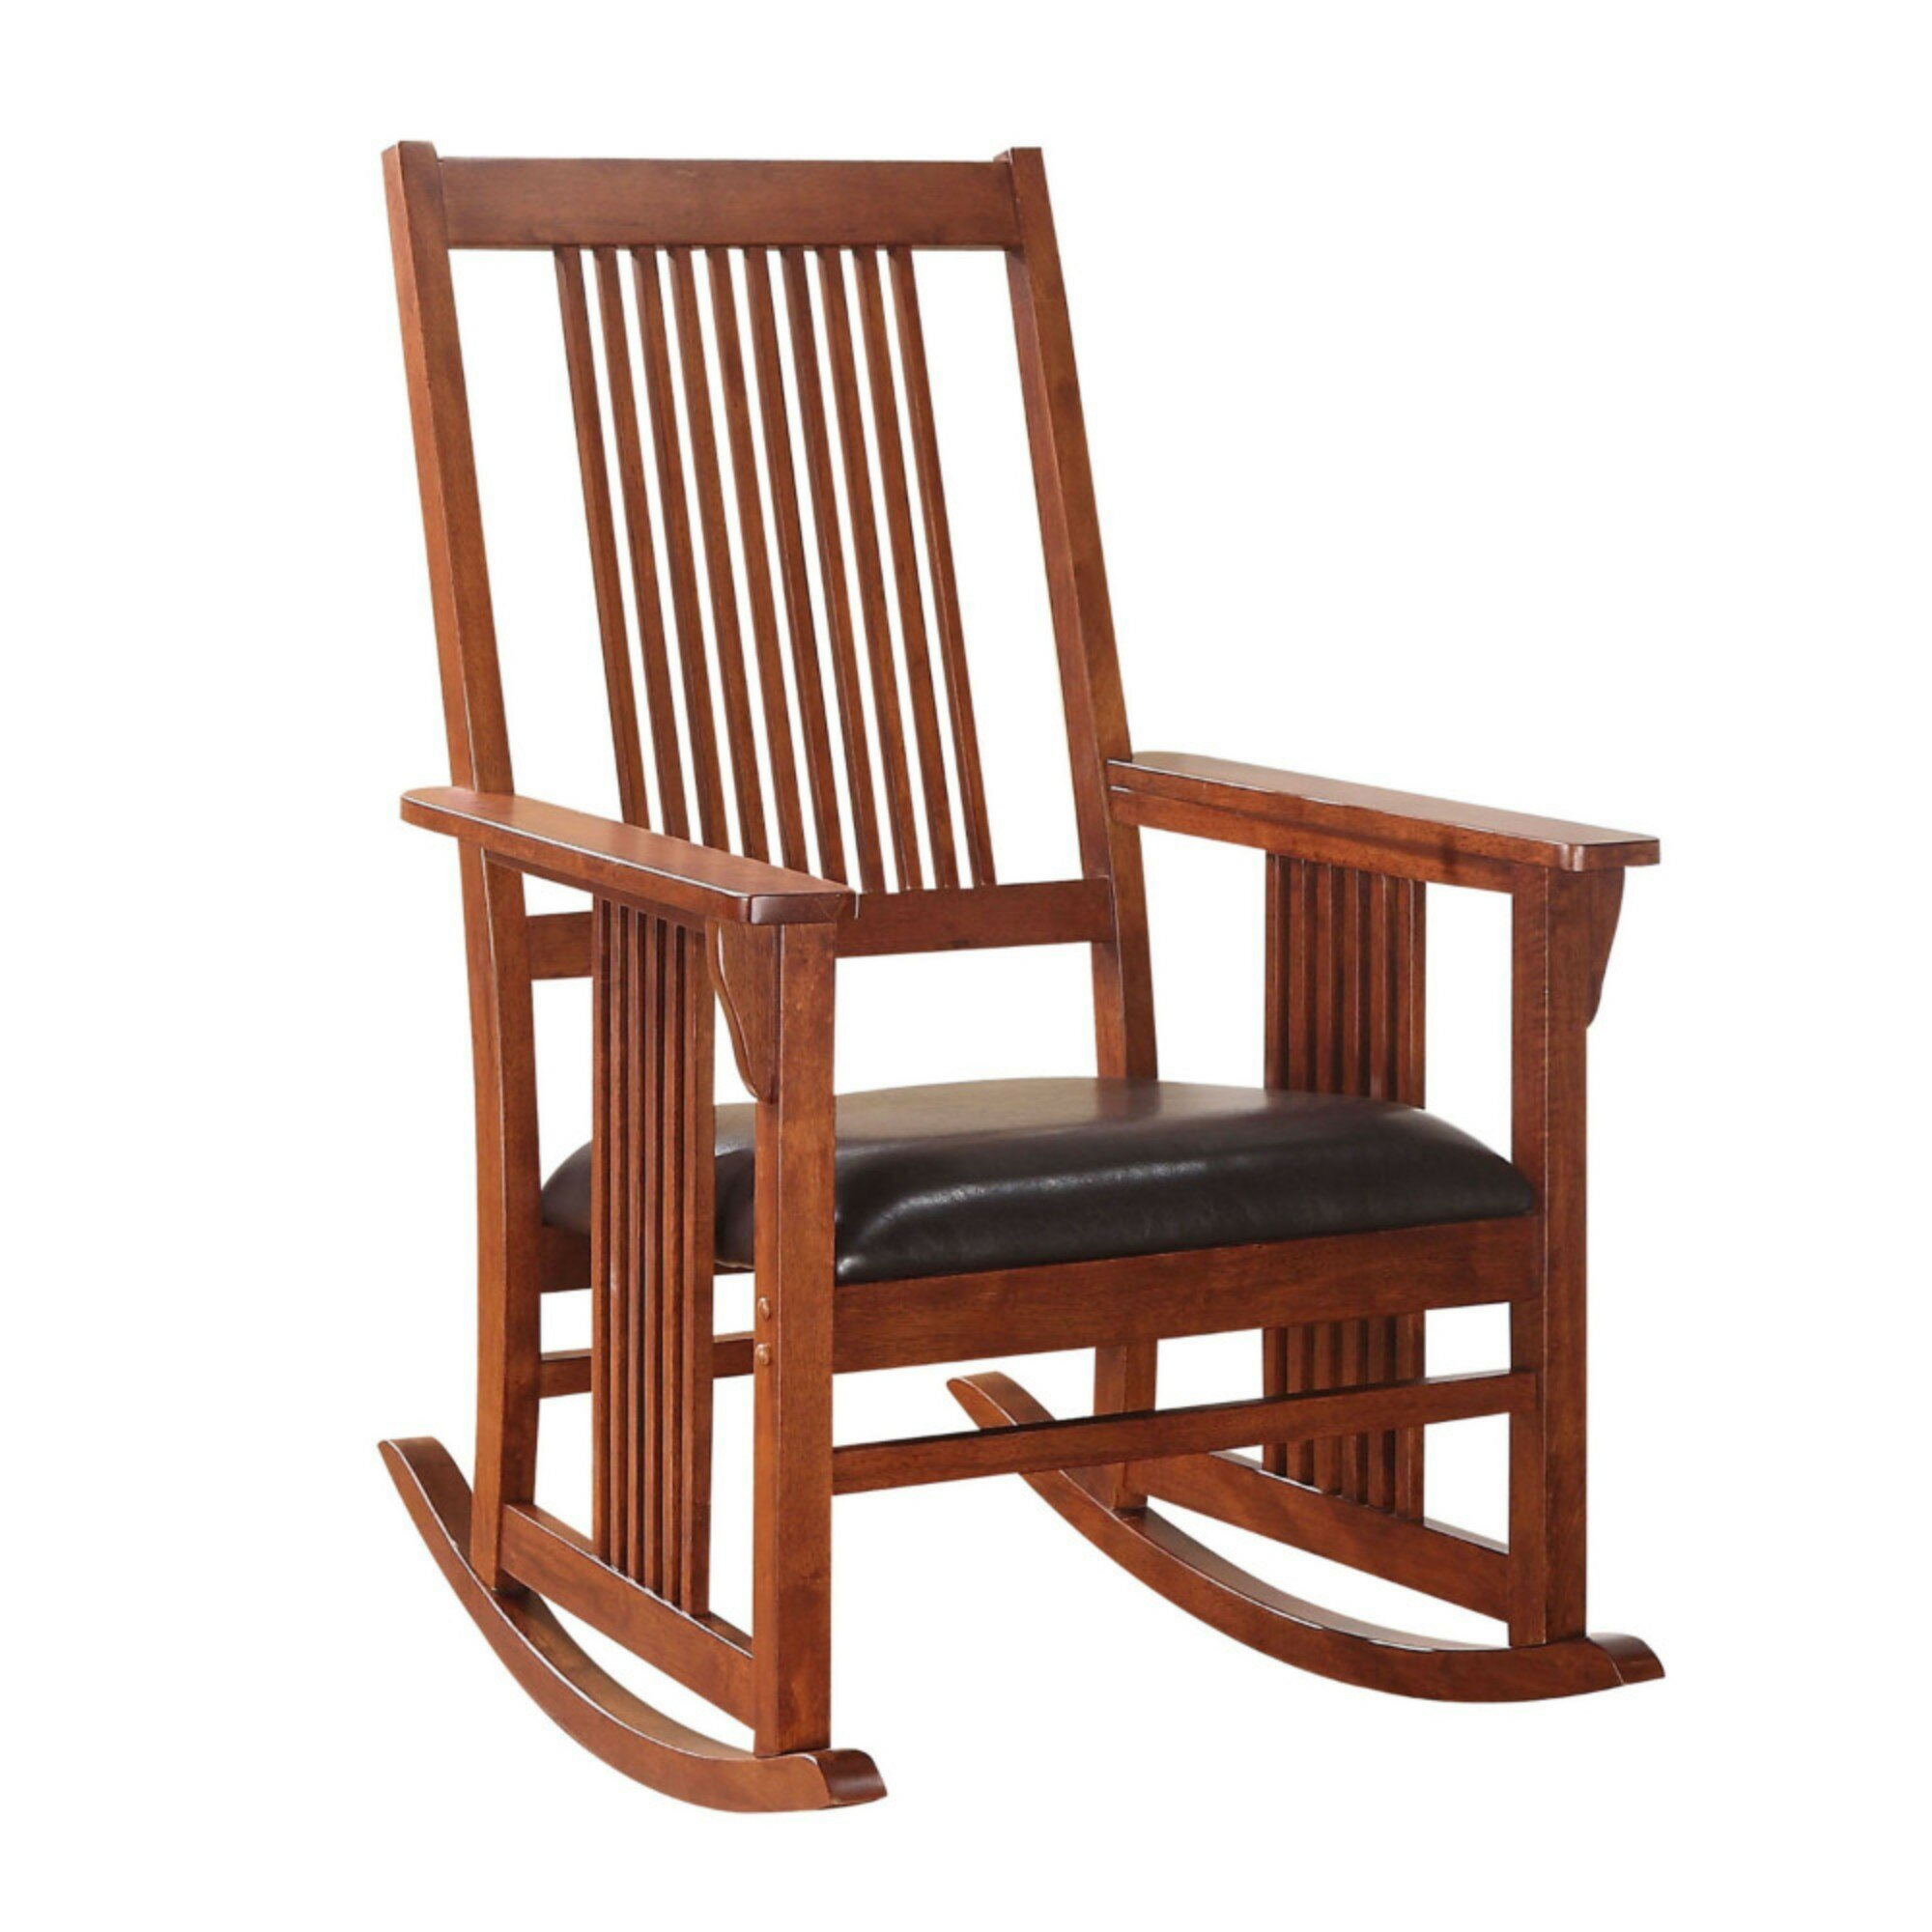 Millwood Pines Piper Wooden Rocking Chair